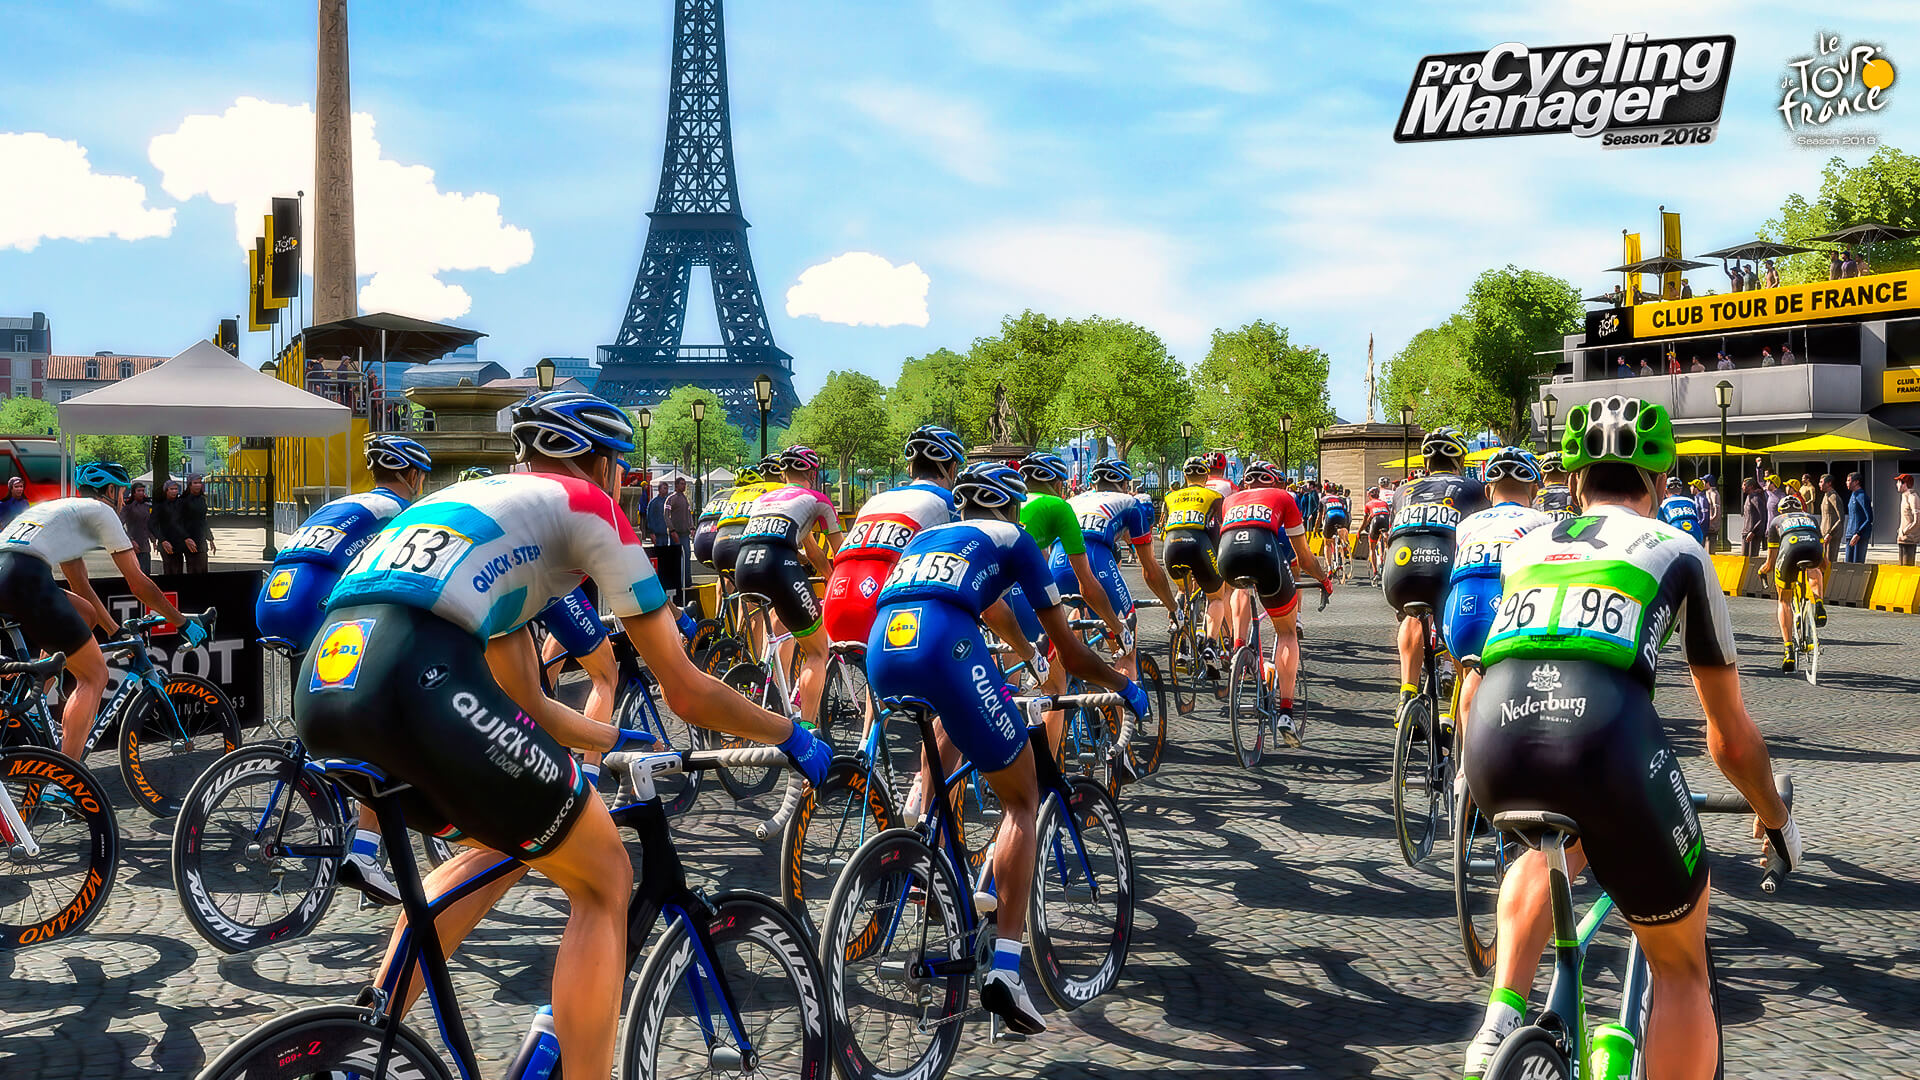 How Many Riders In The Tour De France